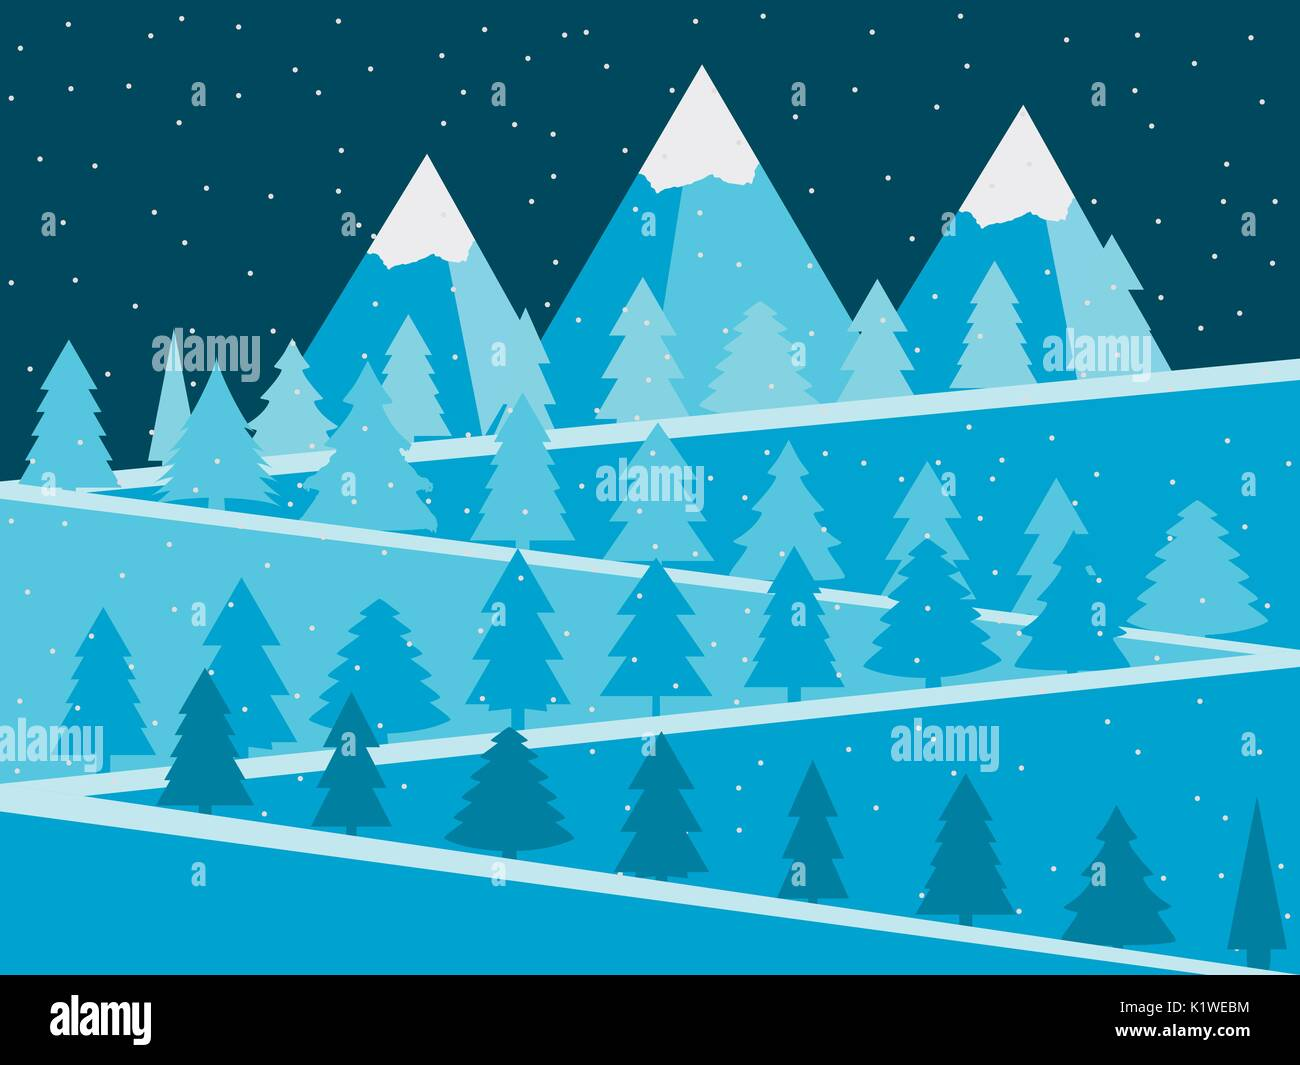 Mountain landscape with Christmas trees. Snowy peaks flat design. Vector illustration. - Stock Vector